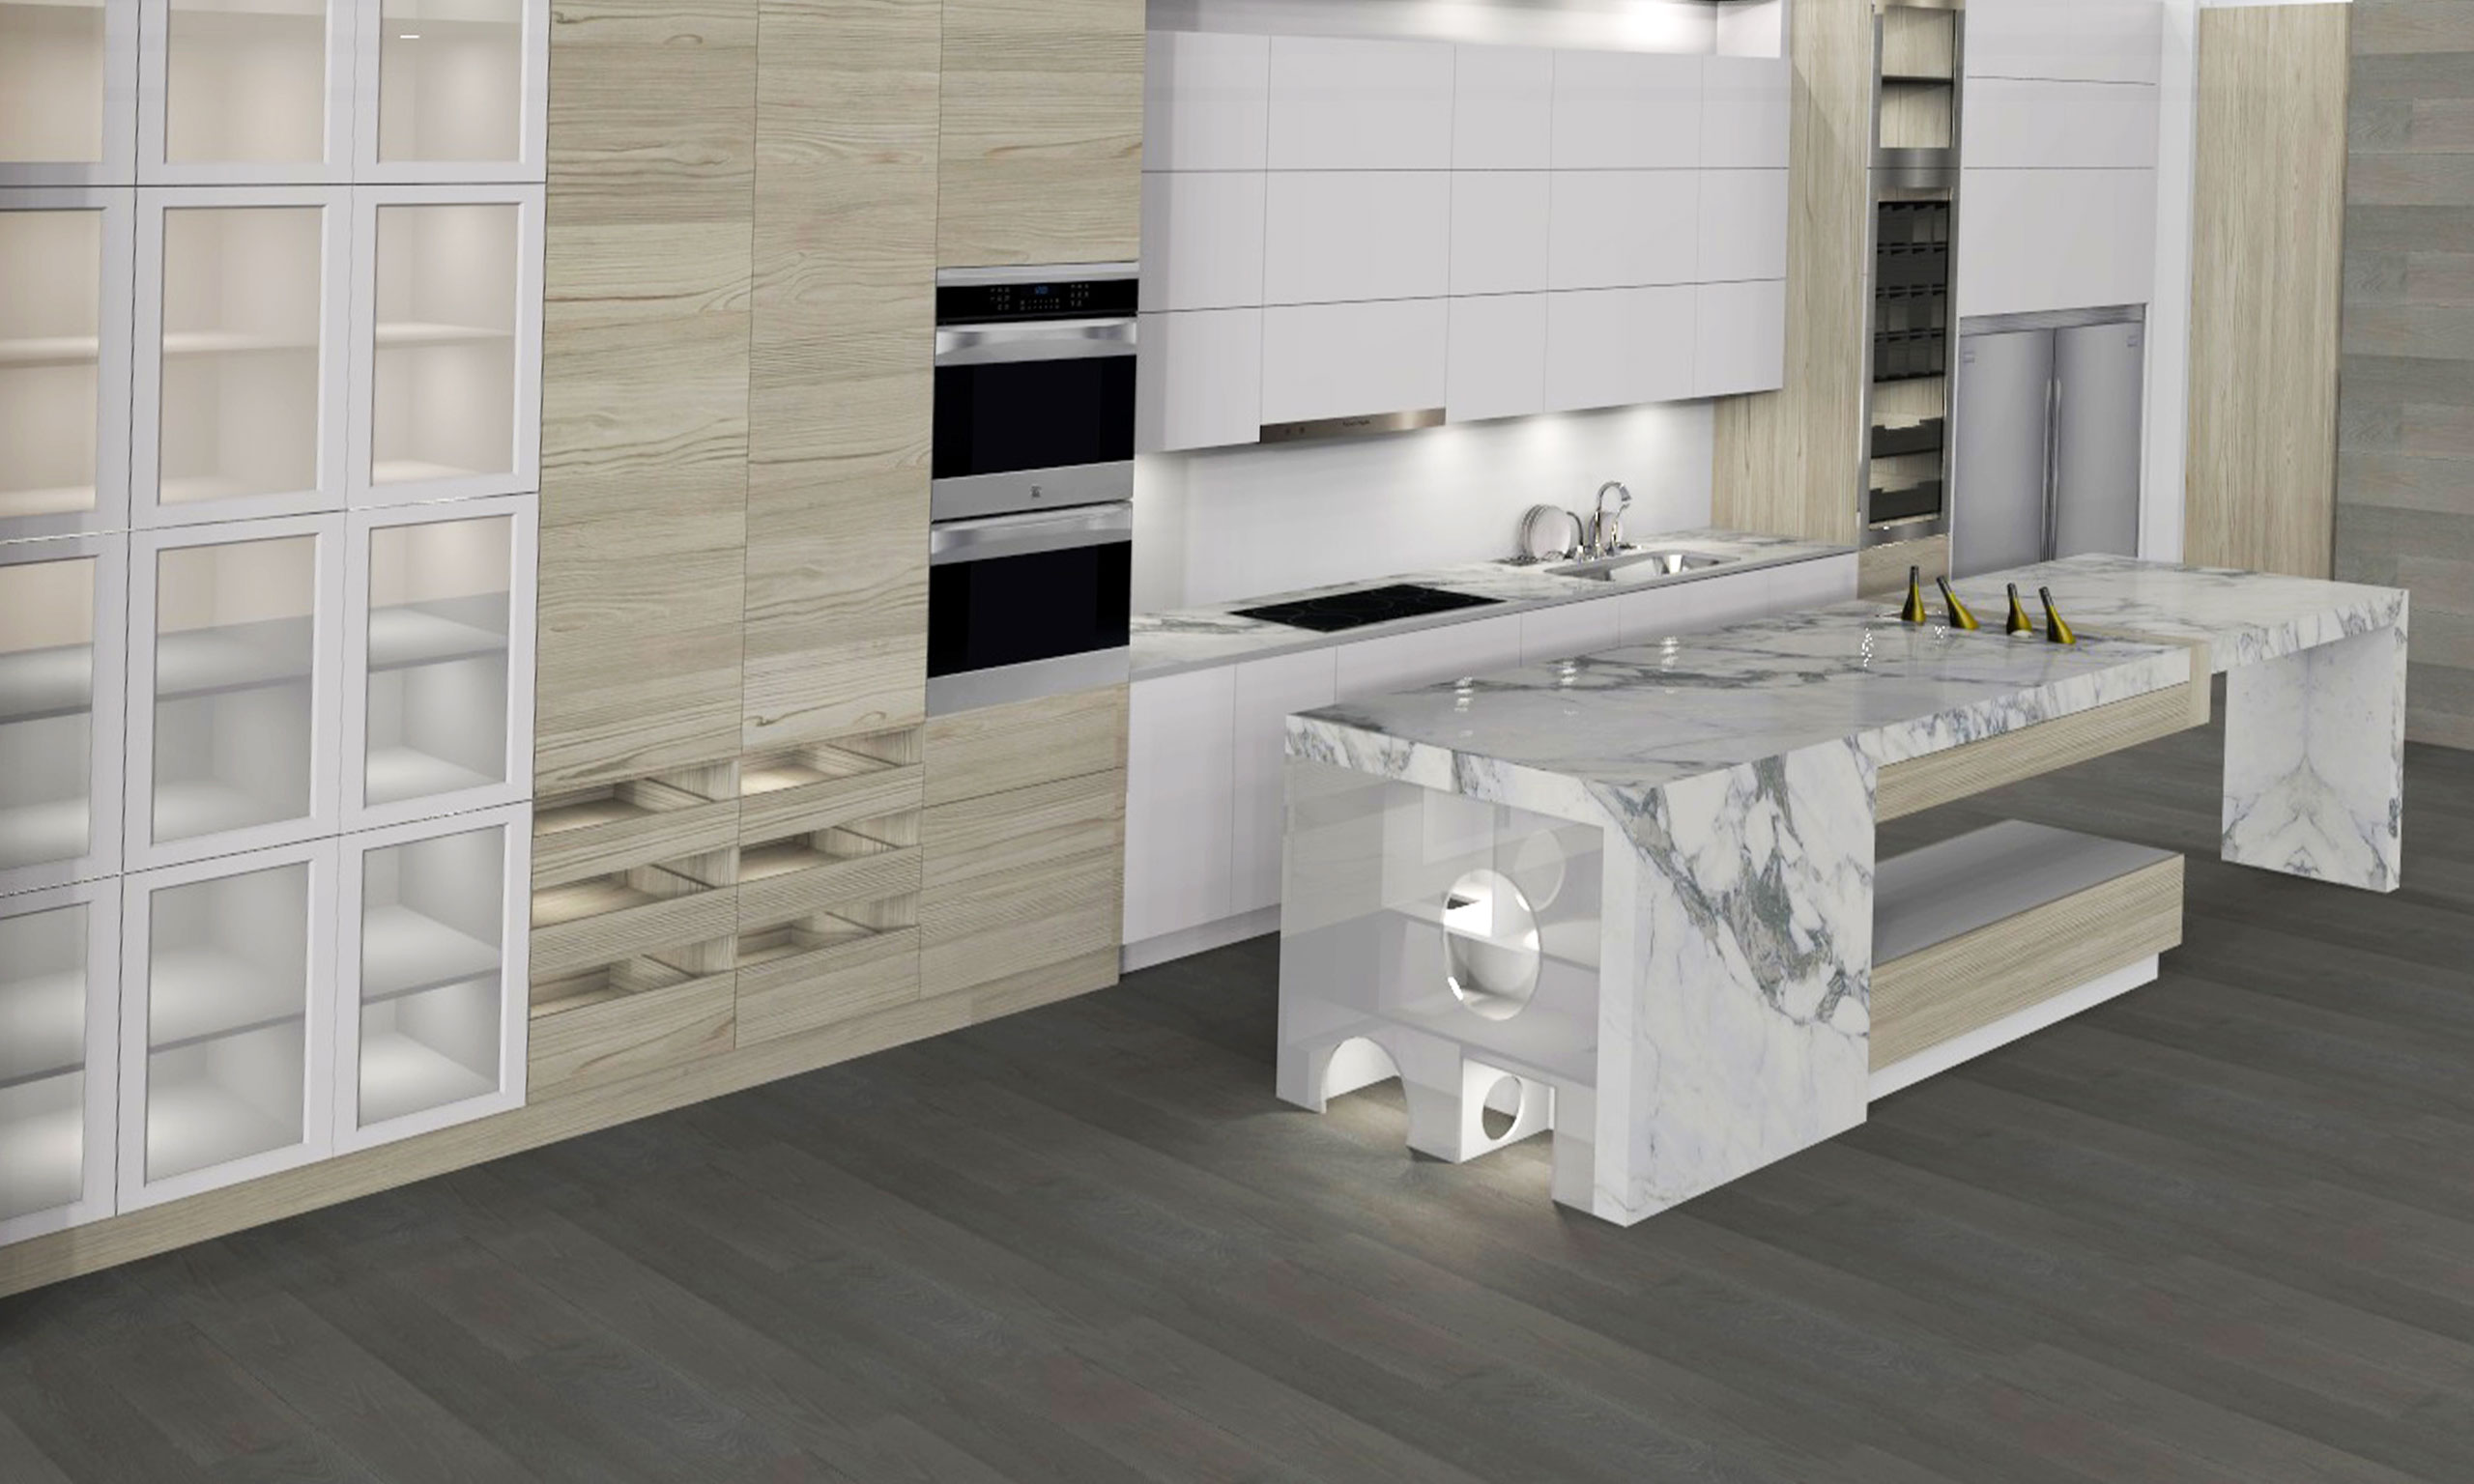 kitchen_3d_visualization